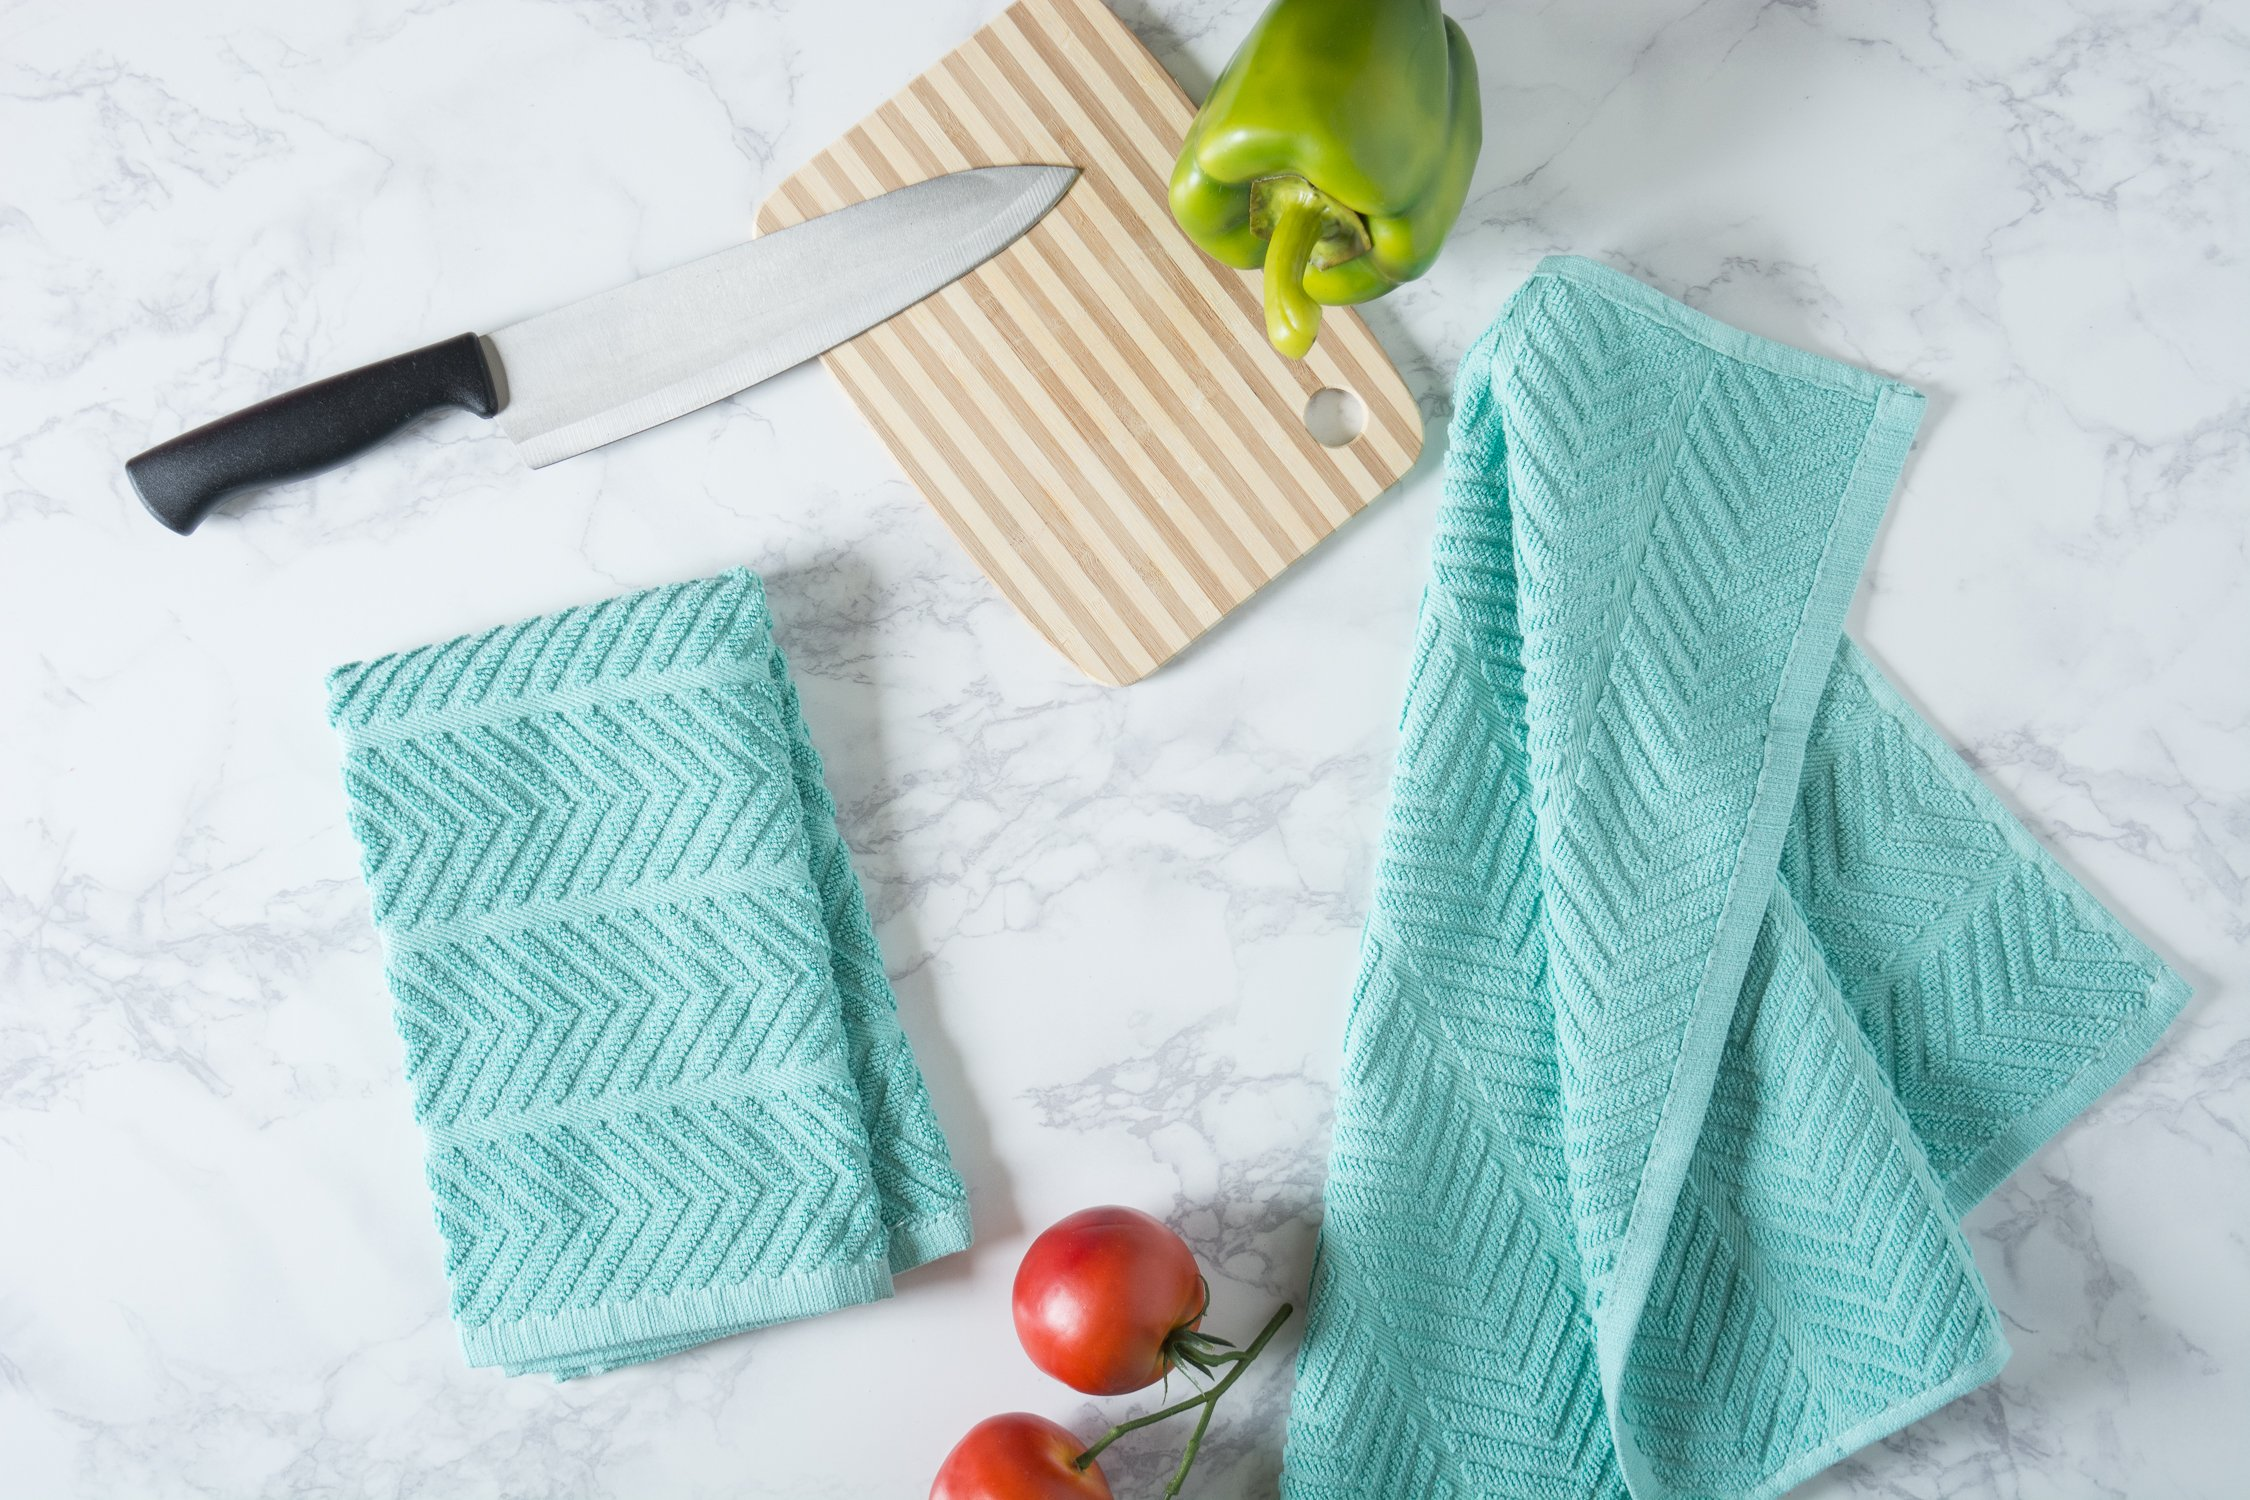 DII 100% Cotton Ultra-Absorbent Cleaning Drying Luxury Kitchen Chevron Bar Mop Dish Towels for Everyday Home Basic 16 x 19 Set of 4- Aqua by DII (Image #5)